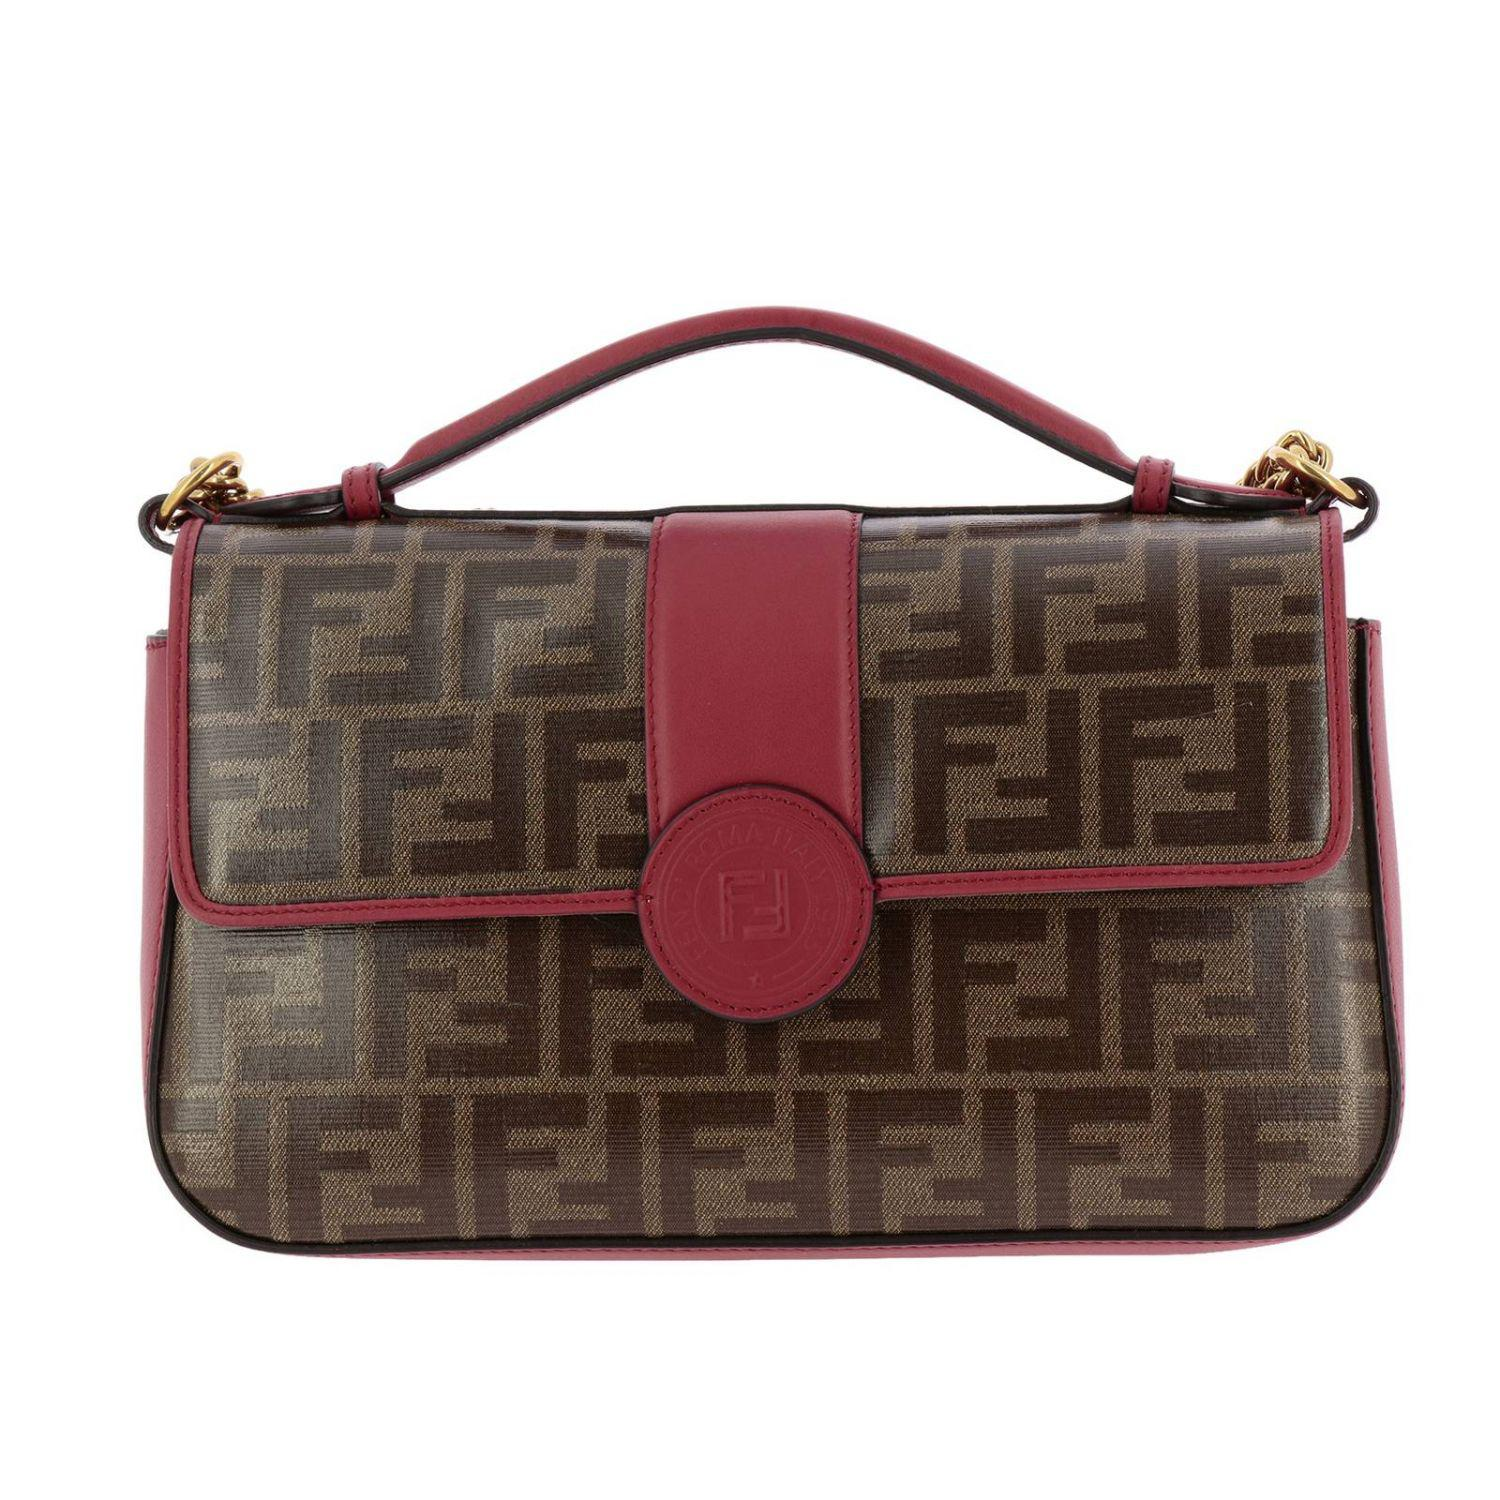 c5315031319a Lyst - Fendi Crossbody Bags Shoulder Bag Women in Red - Save 32%